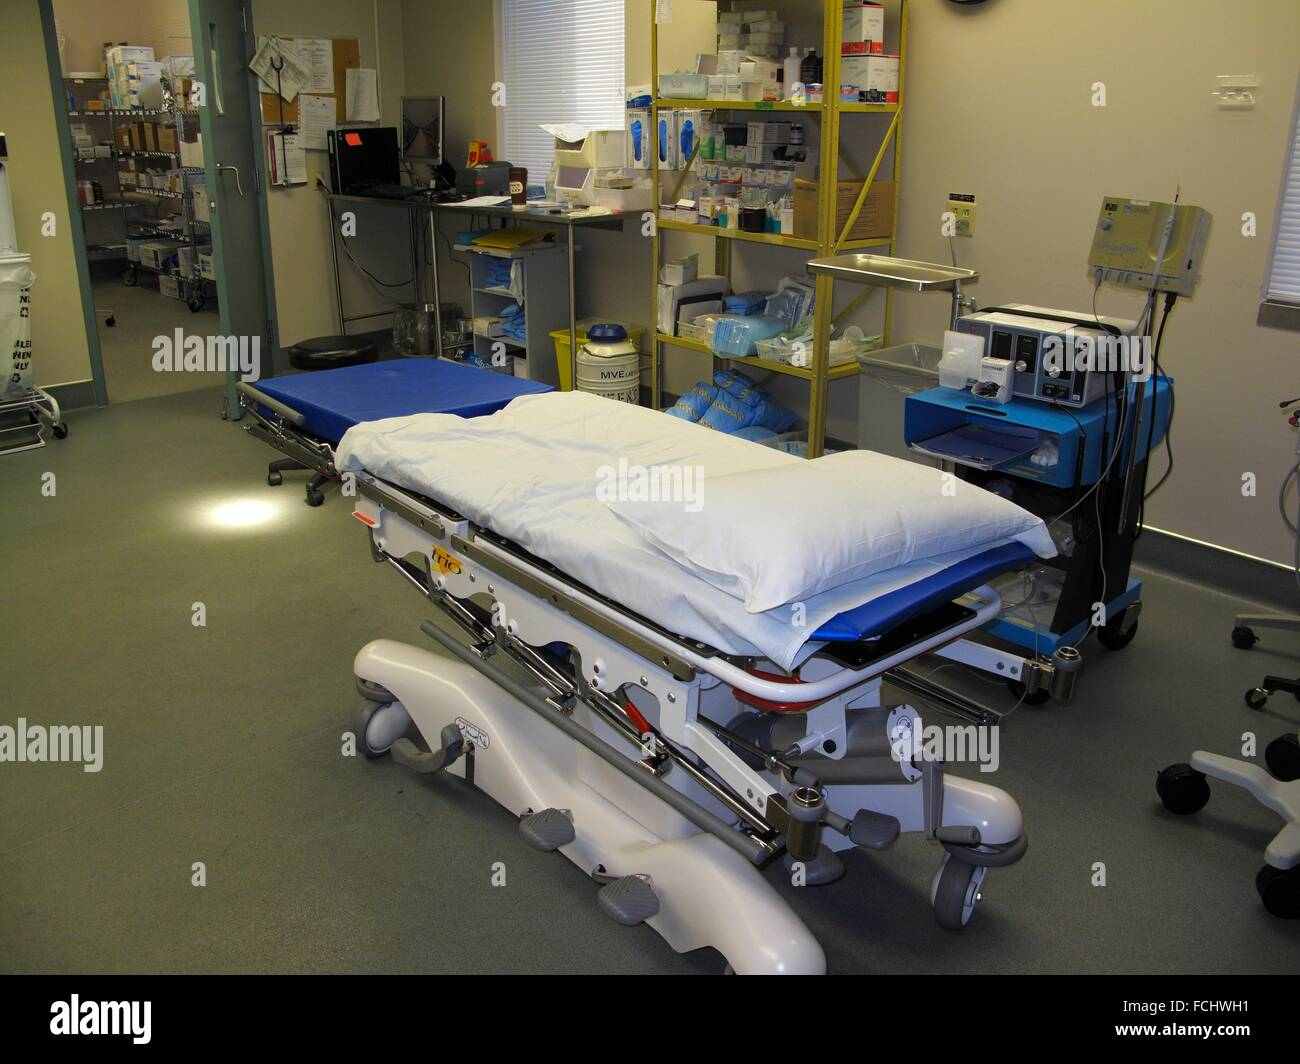 A procedure operating room in a hospital - Stock Image